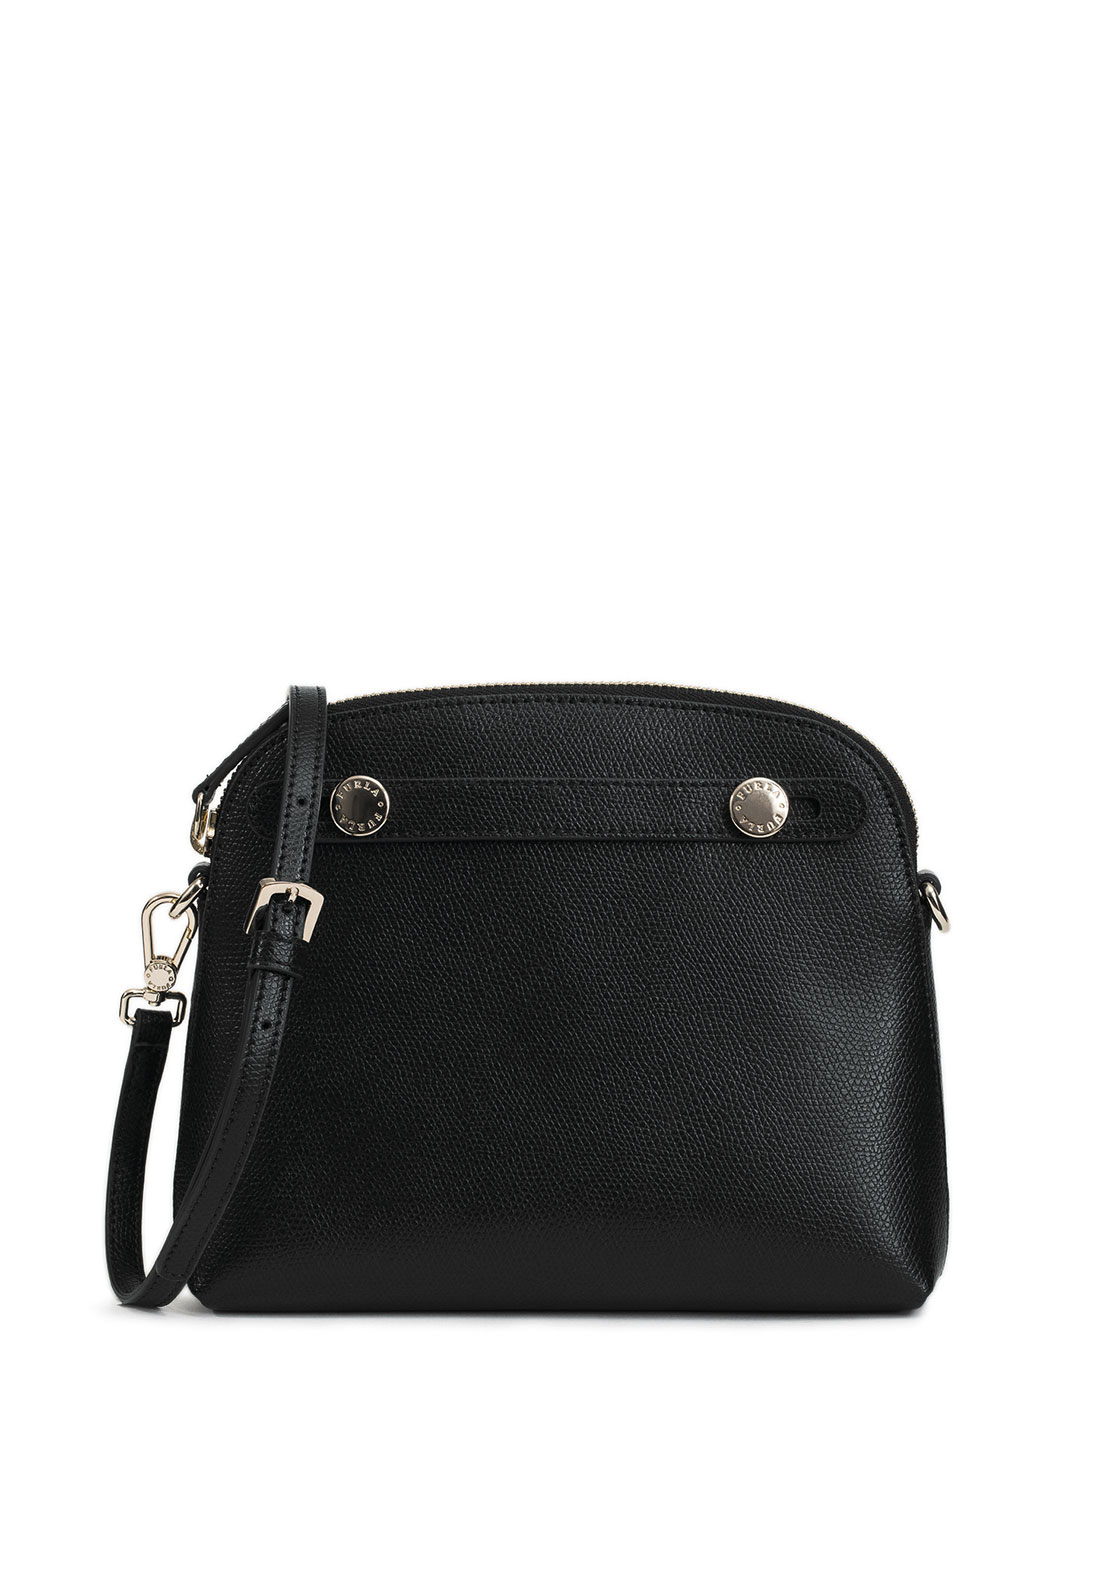 Furla Piper Crossbody Mini, Black